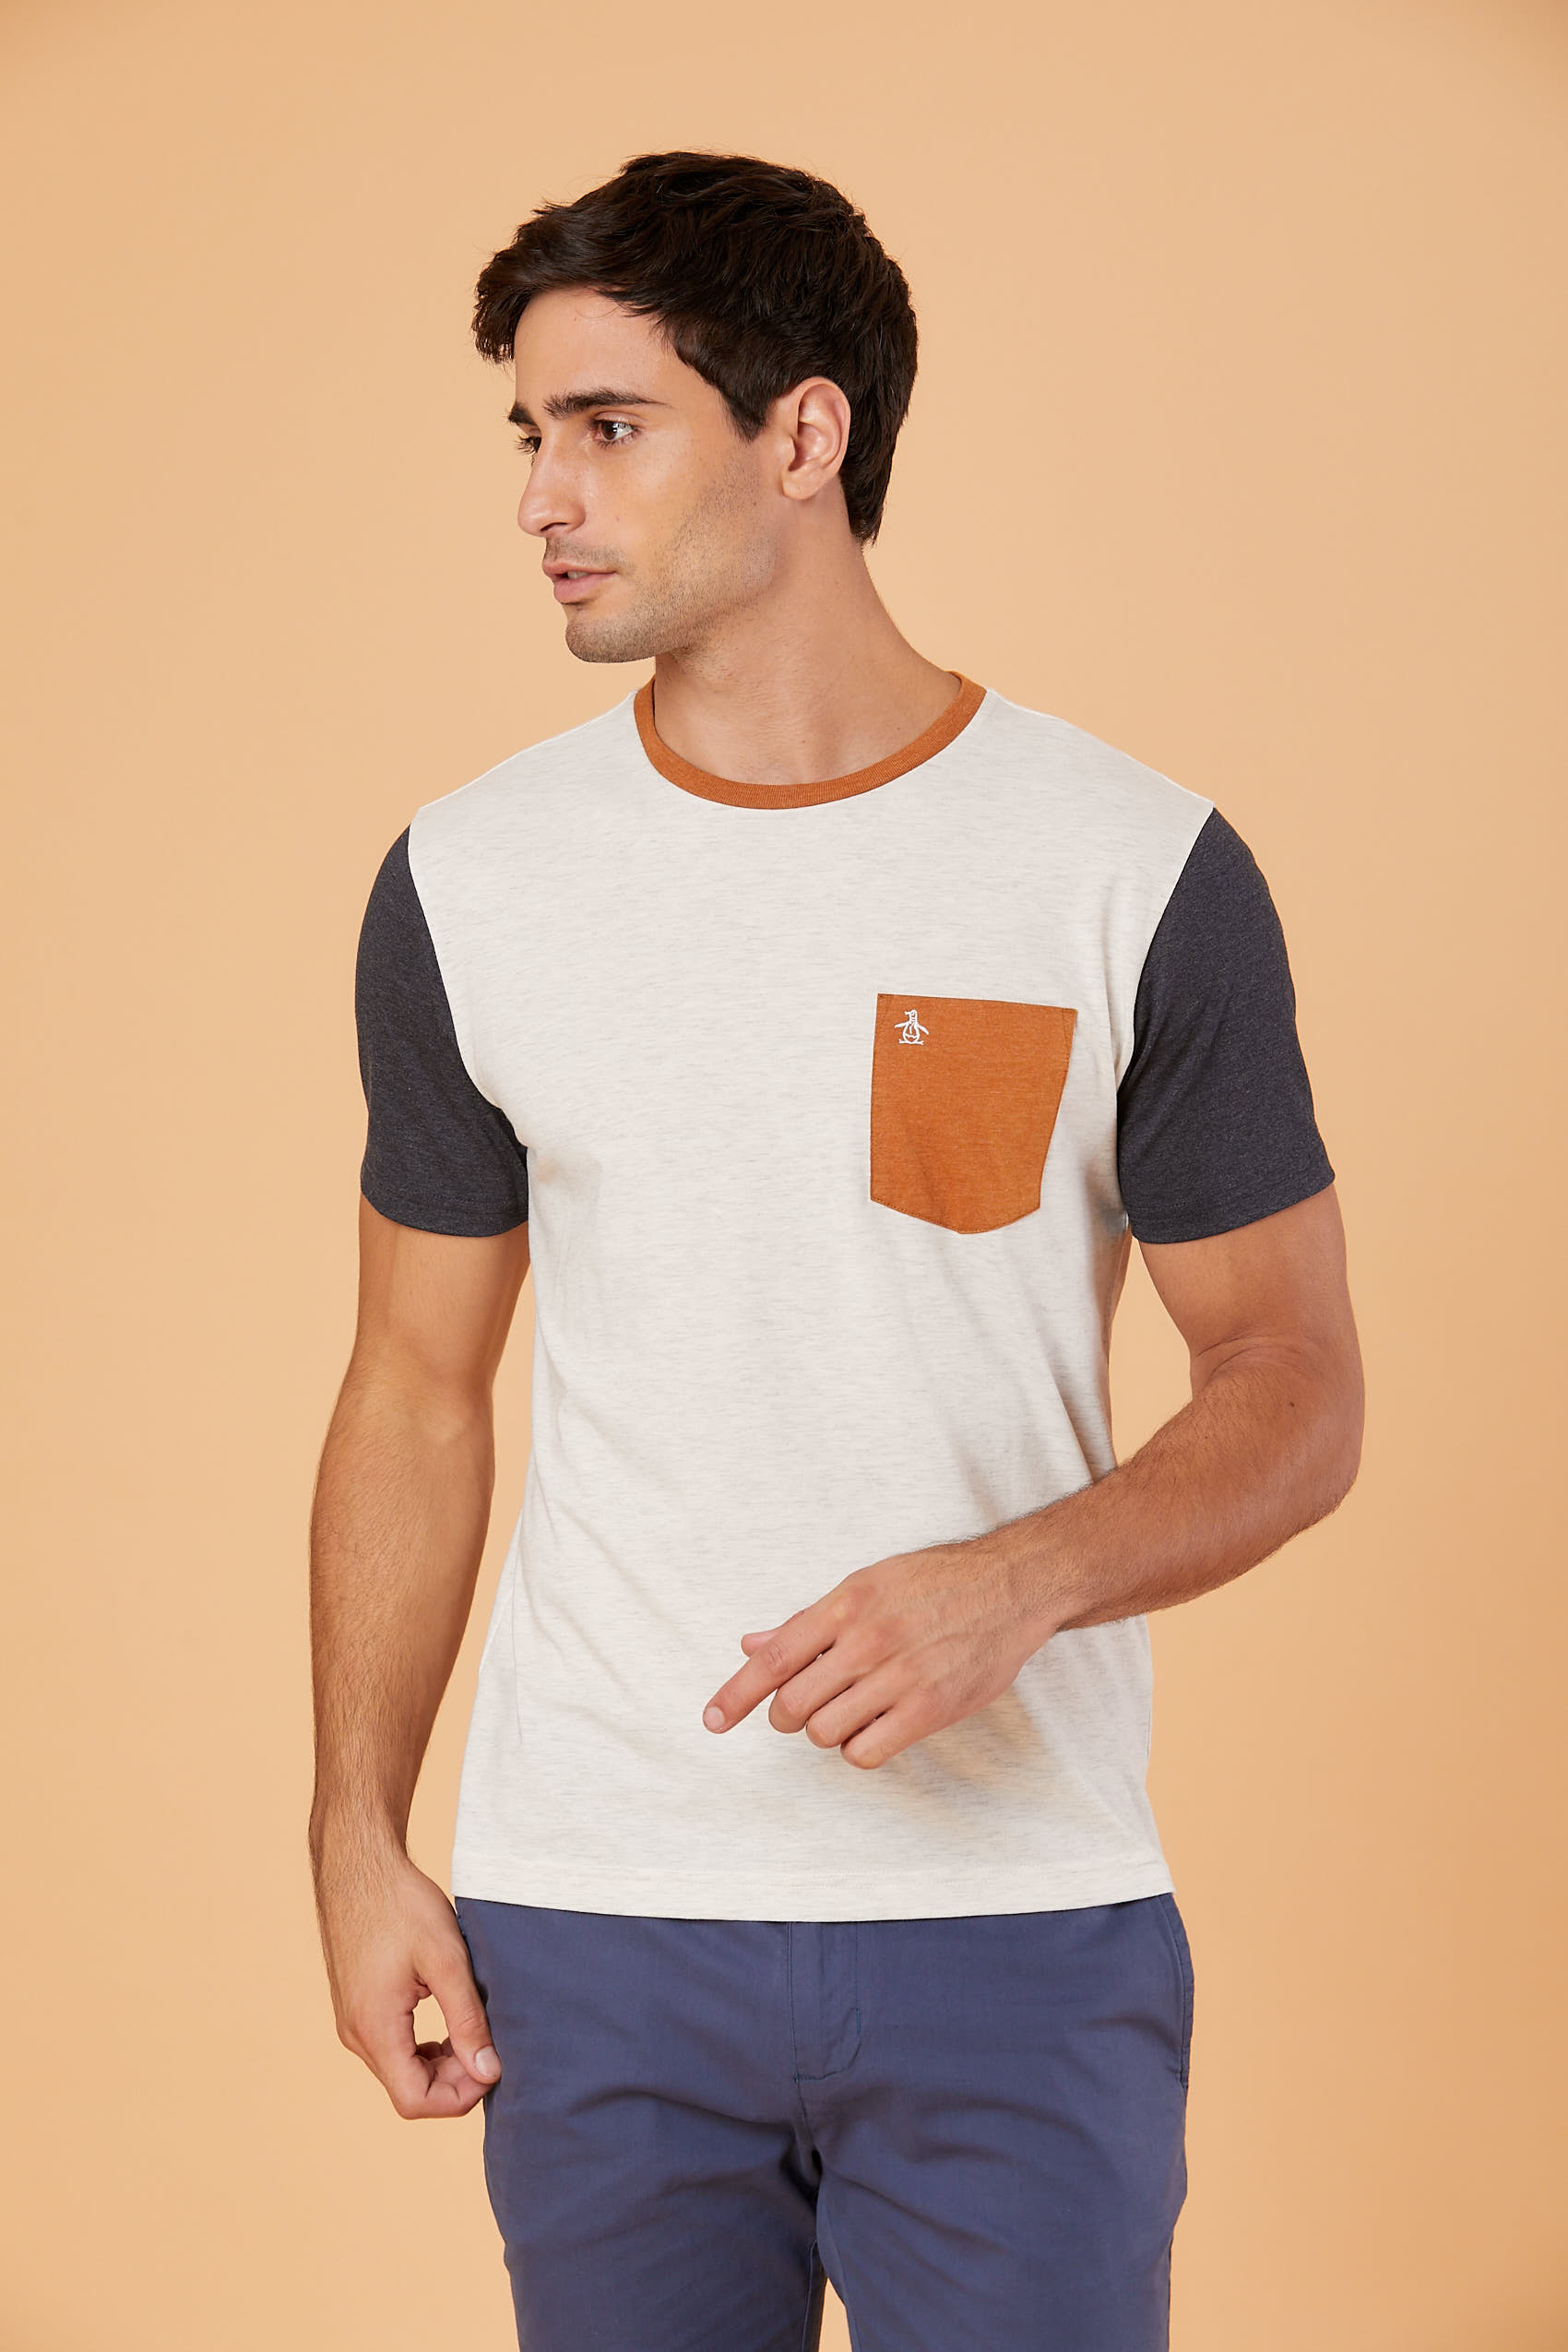 penguin_ss-color-block-tee_43-03-2021__picture-19456